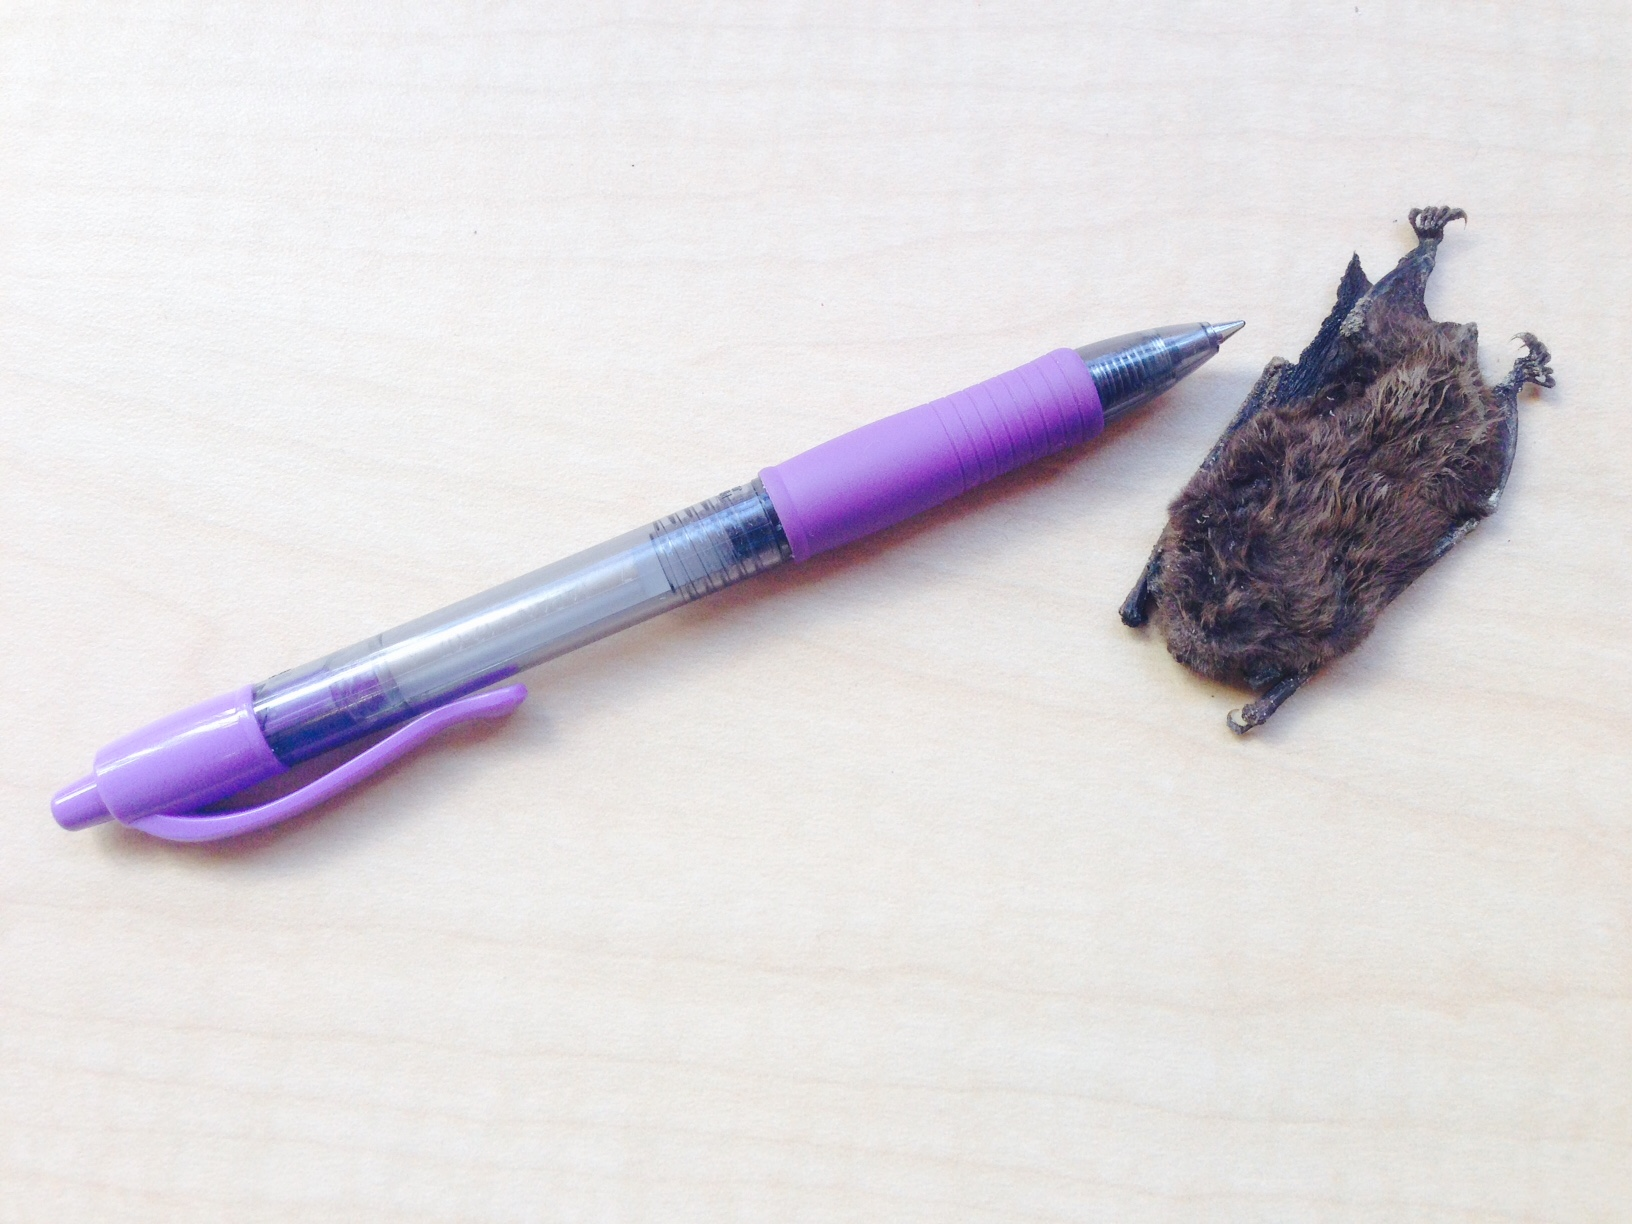 The carcass of this small brown bat compared to a pen. Alive they weigh between 5-7 grams. (Photo by Angela Denning, KFSK - Petersburg)